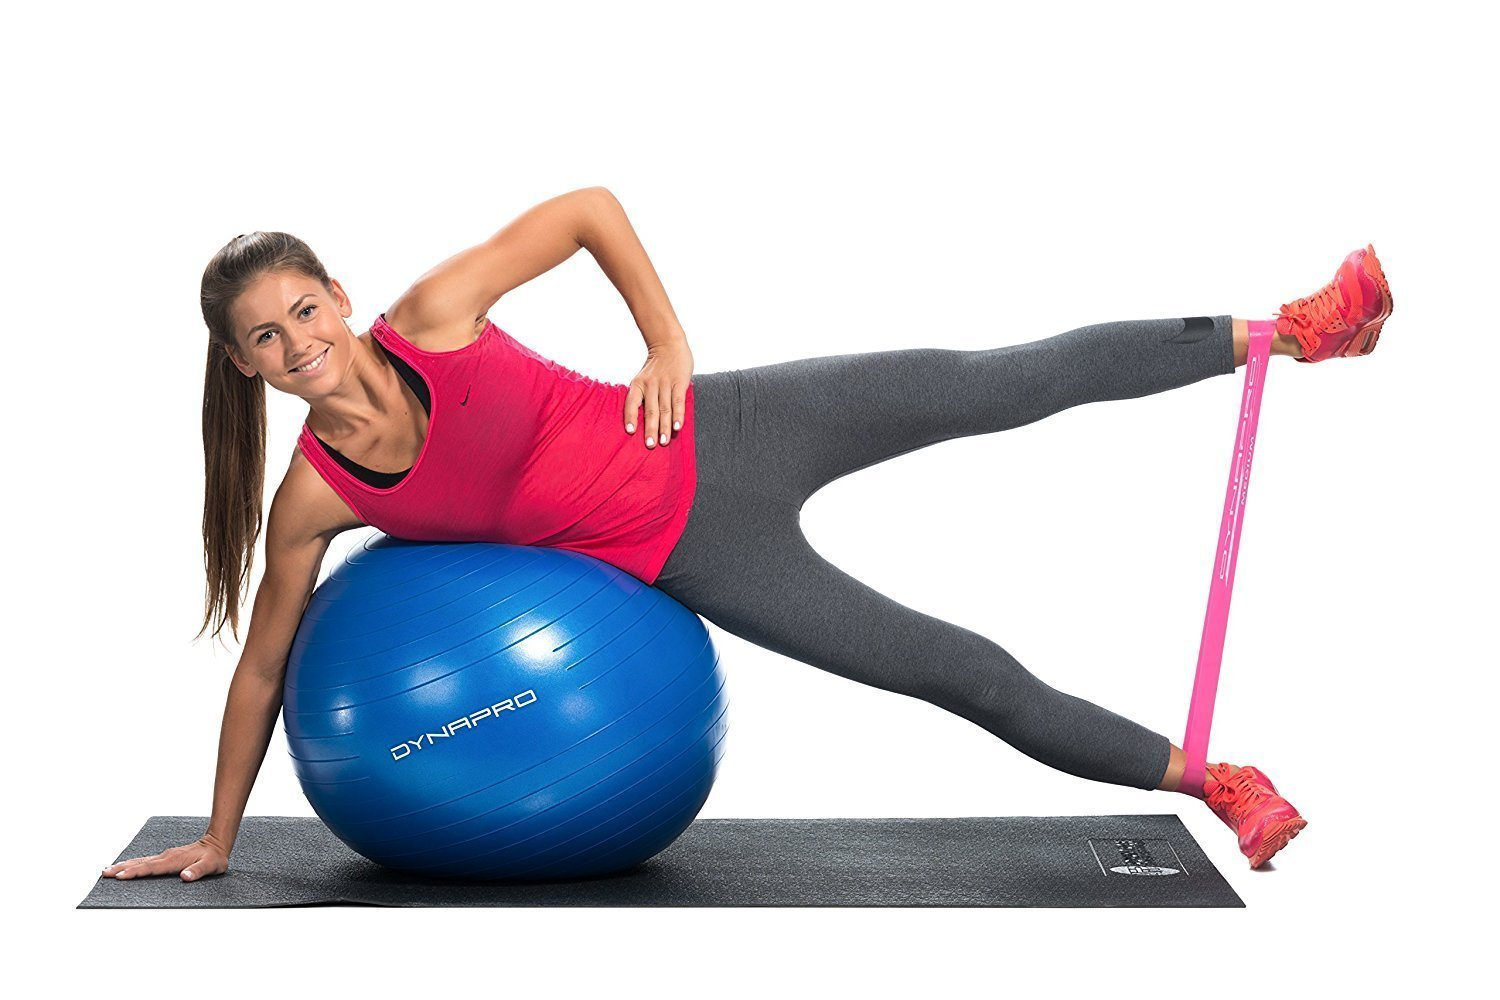 Stability Ball Exercises: The Top 10 Ball Exercises for